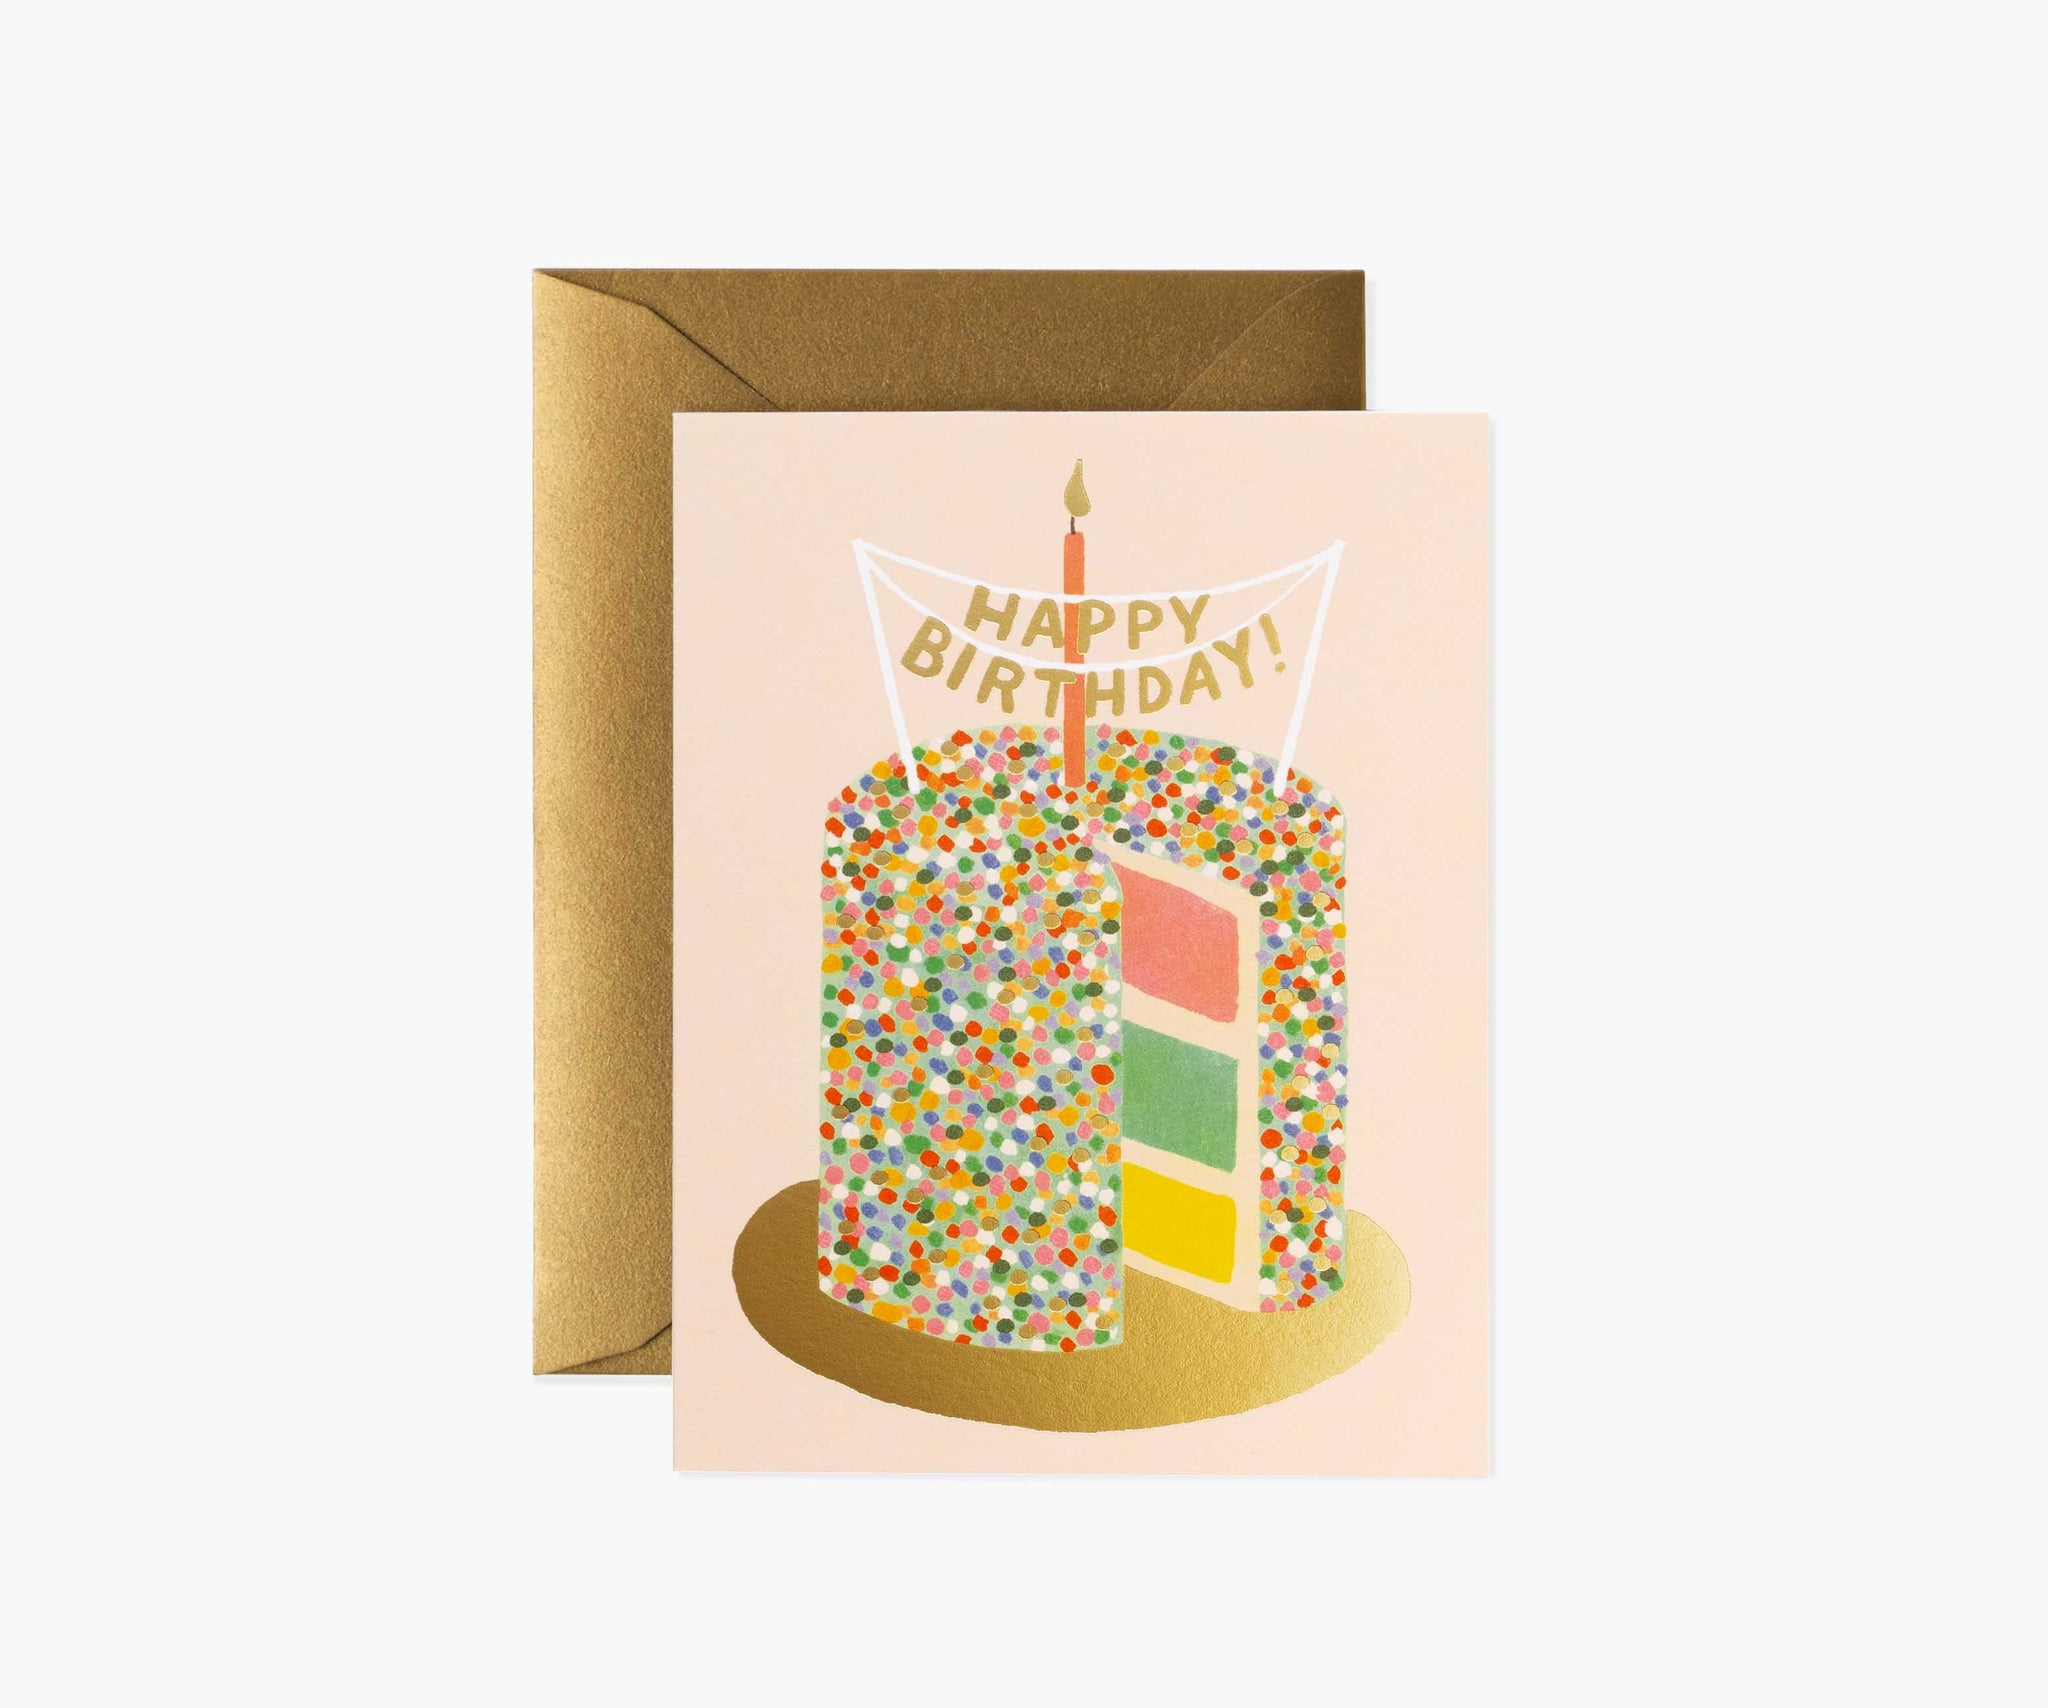 Send happy birthday wishes with the Layer Cake Card. A blank interior lets your handwritten note take center stage.